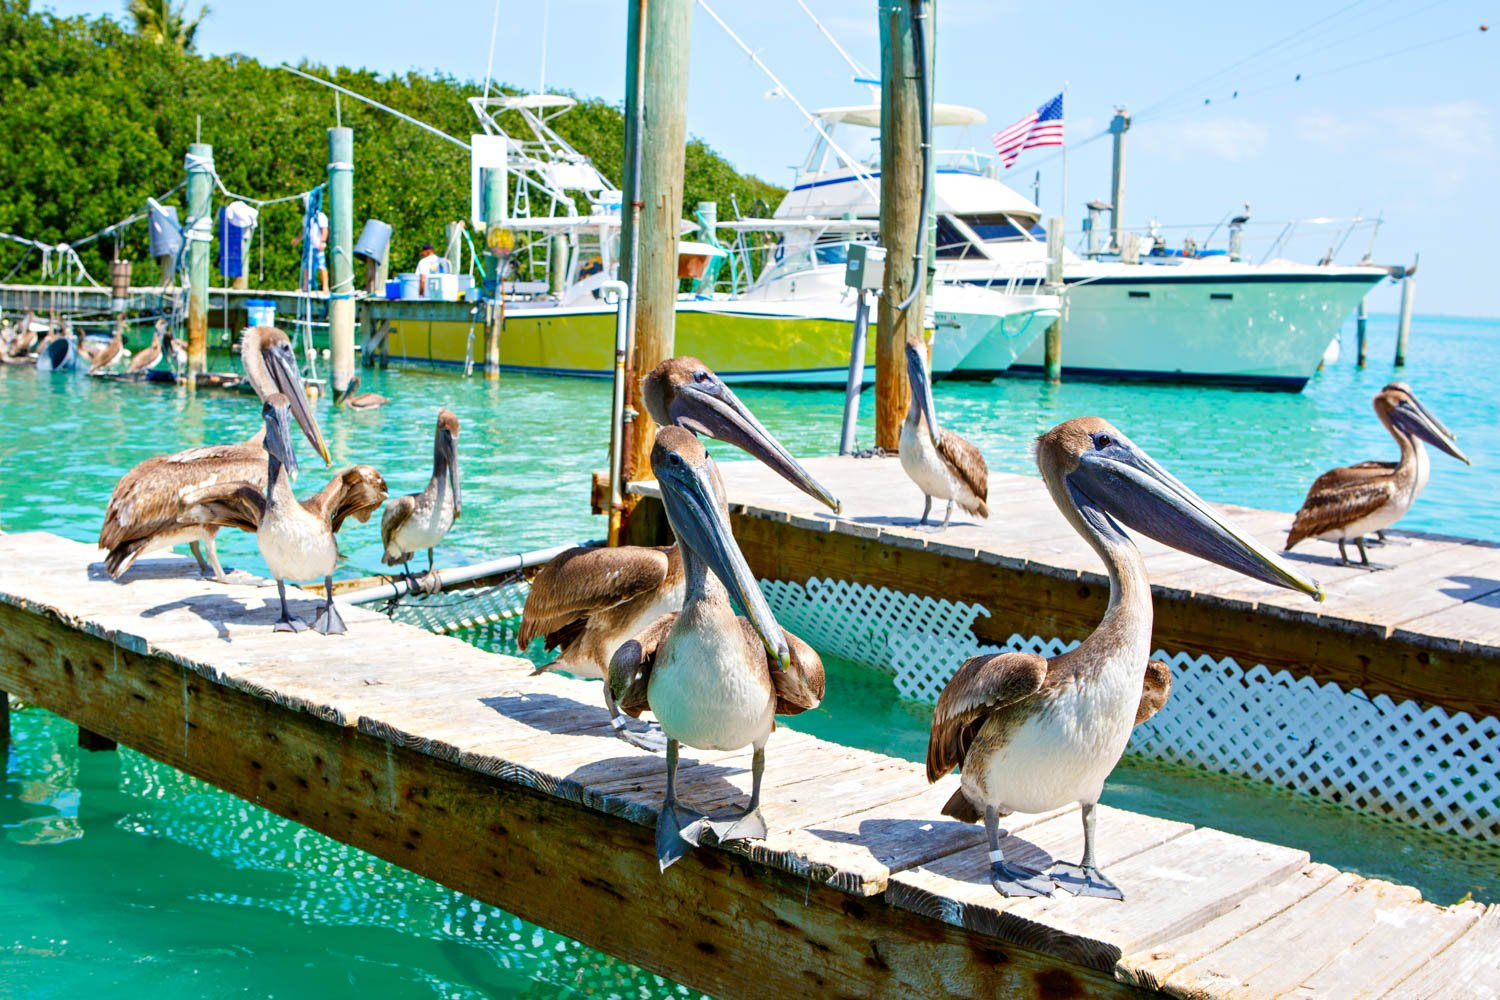 The pelicans are a staple of many Miami day trips as these birds love tropical weather. Miami excursions including Key West are very popular.